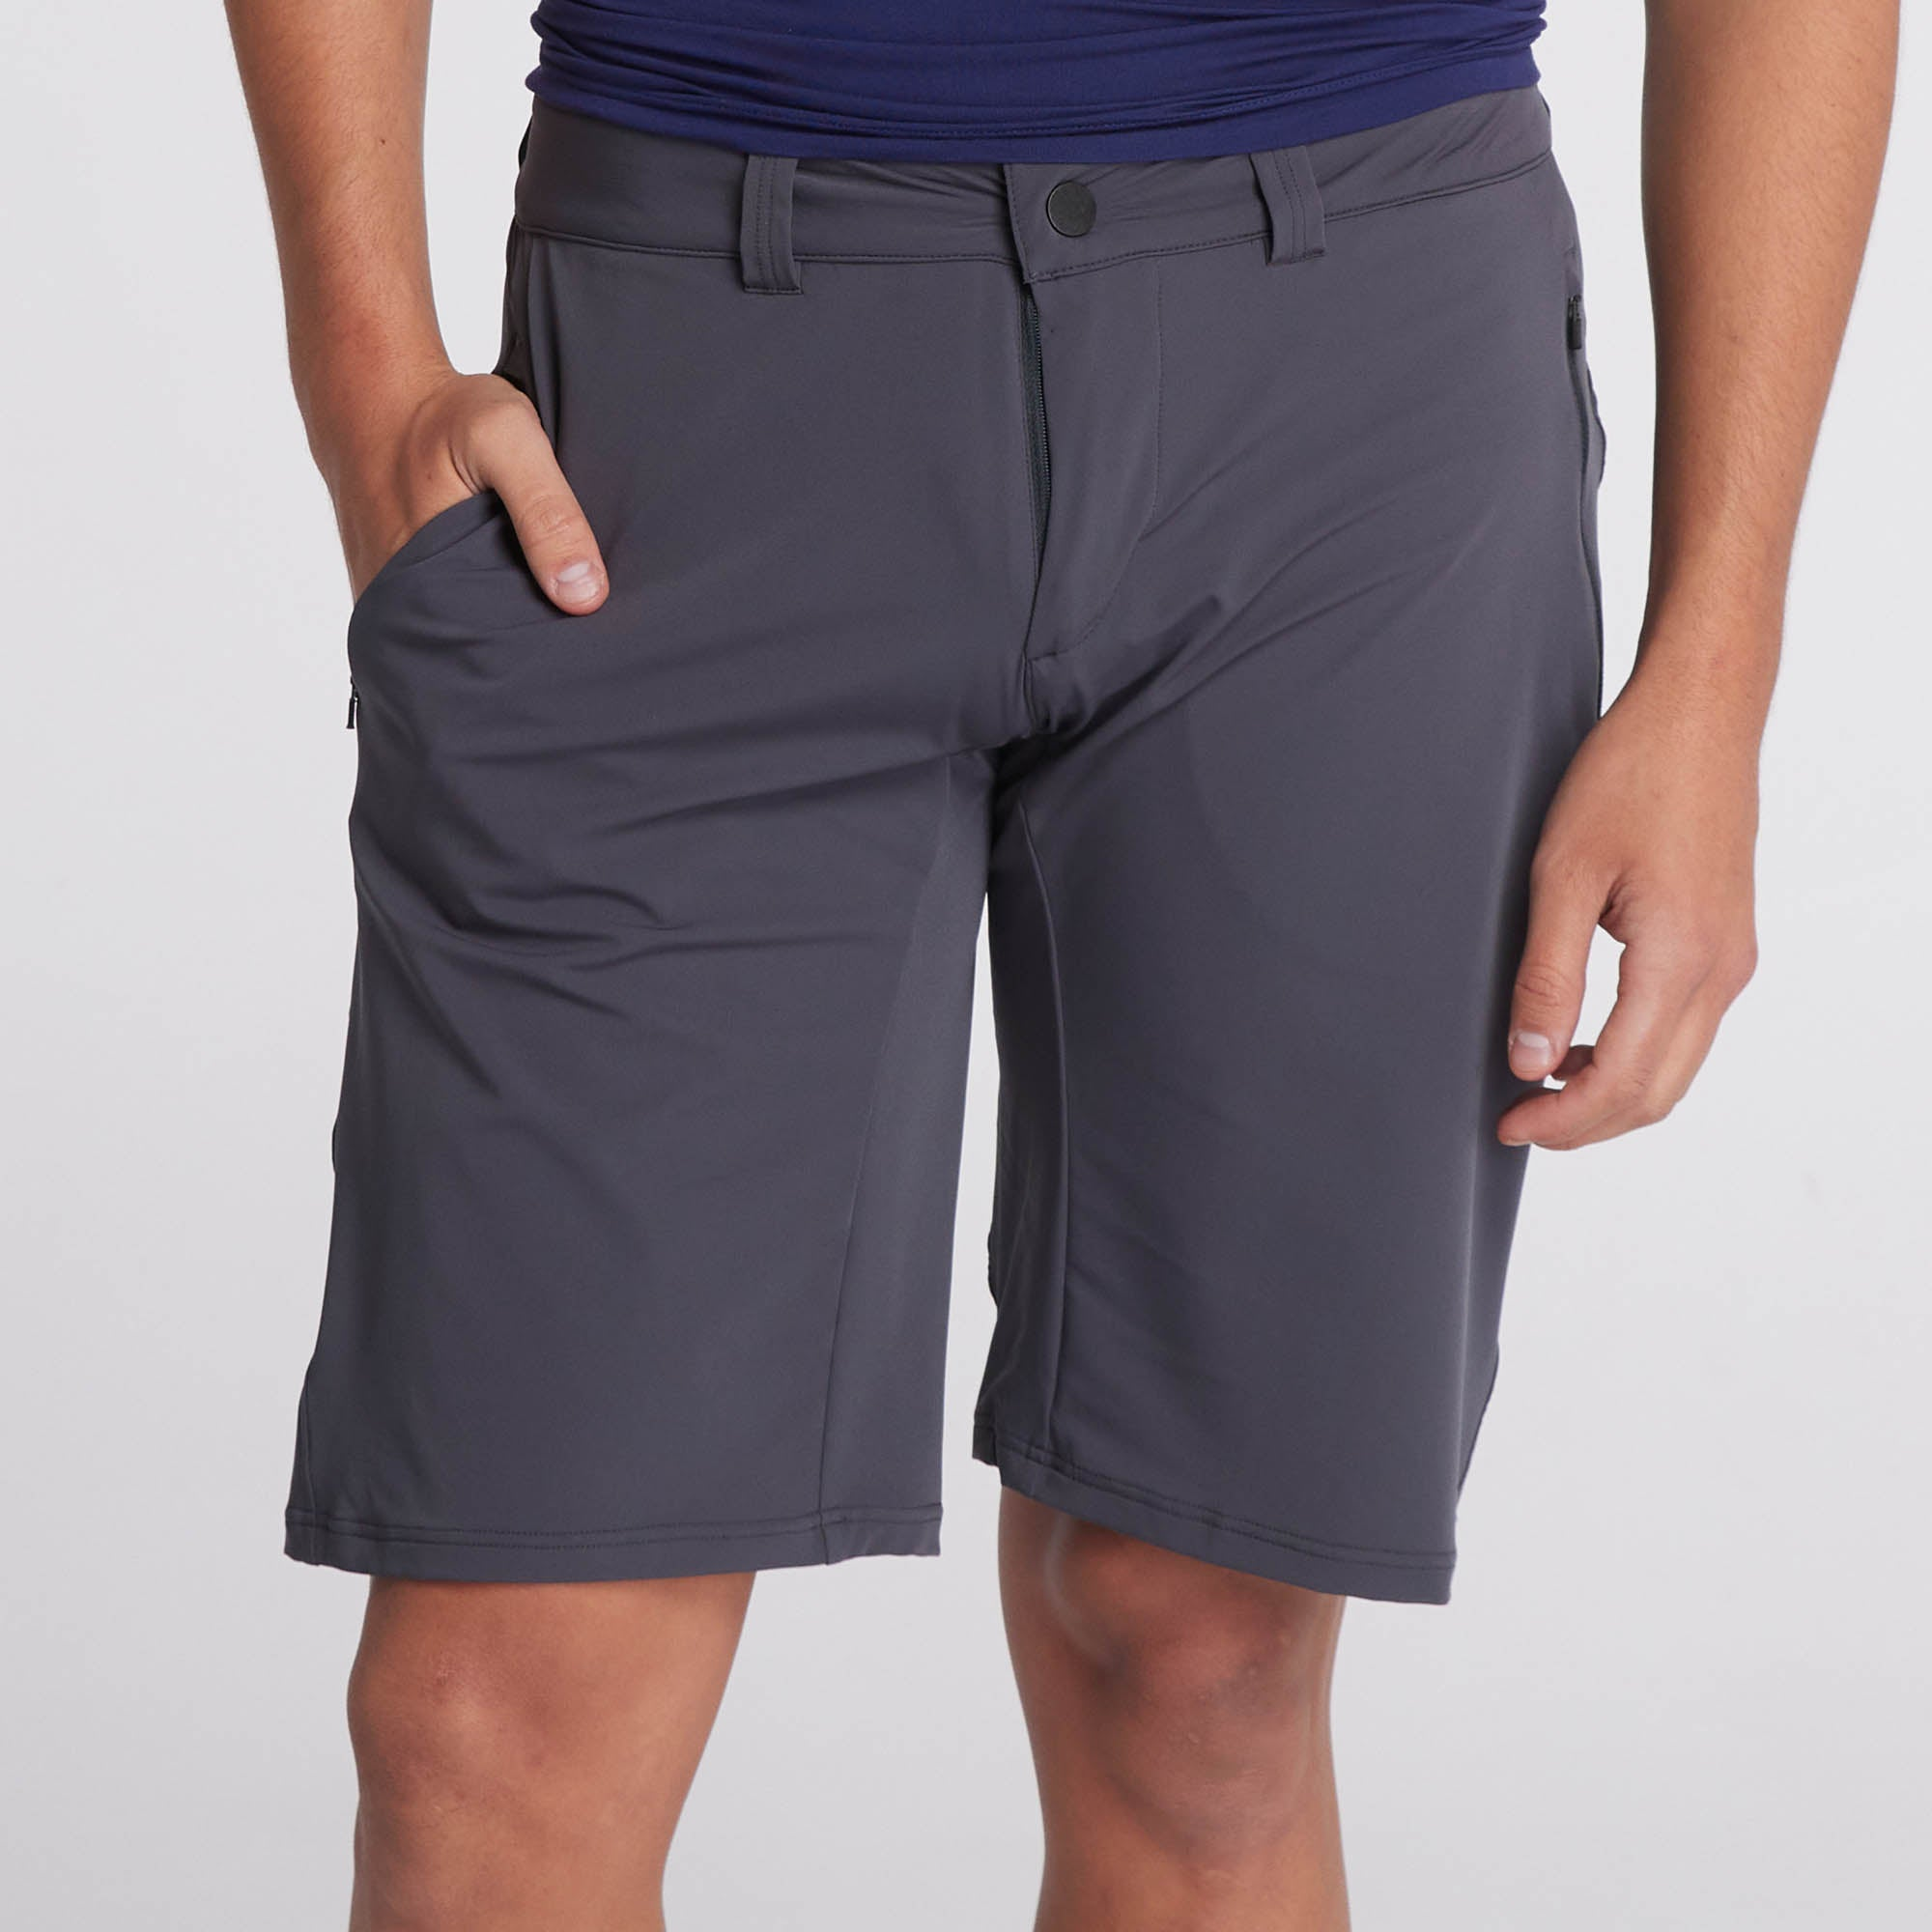 Men's RECON Stealth Short